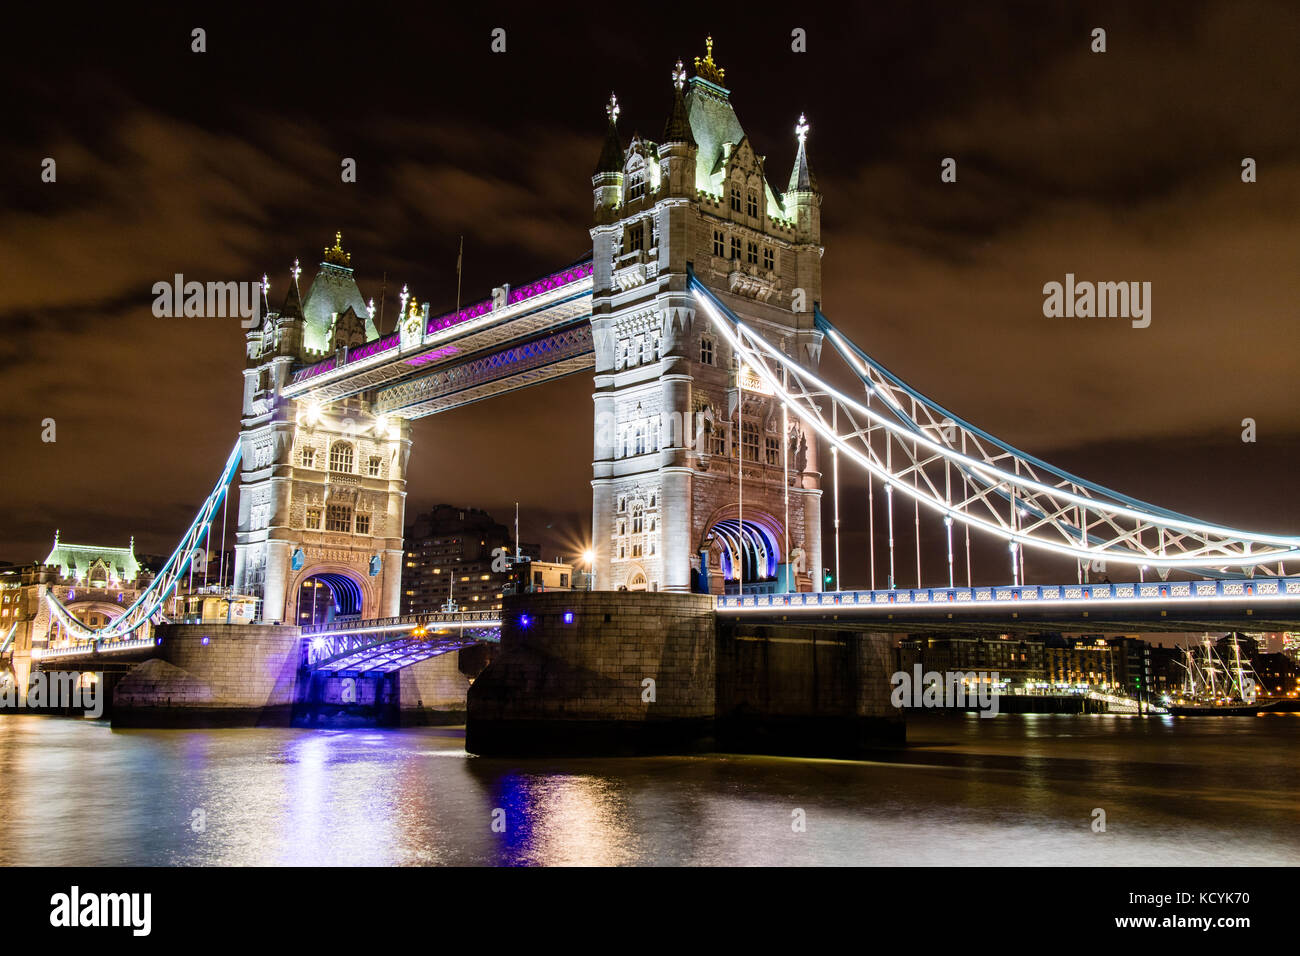 A long exposure of Tower Bridge at night. - Stock Image